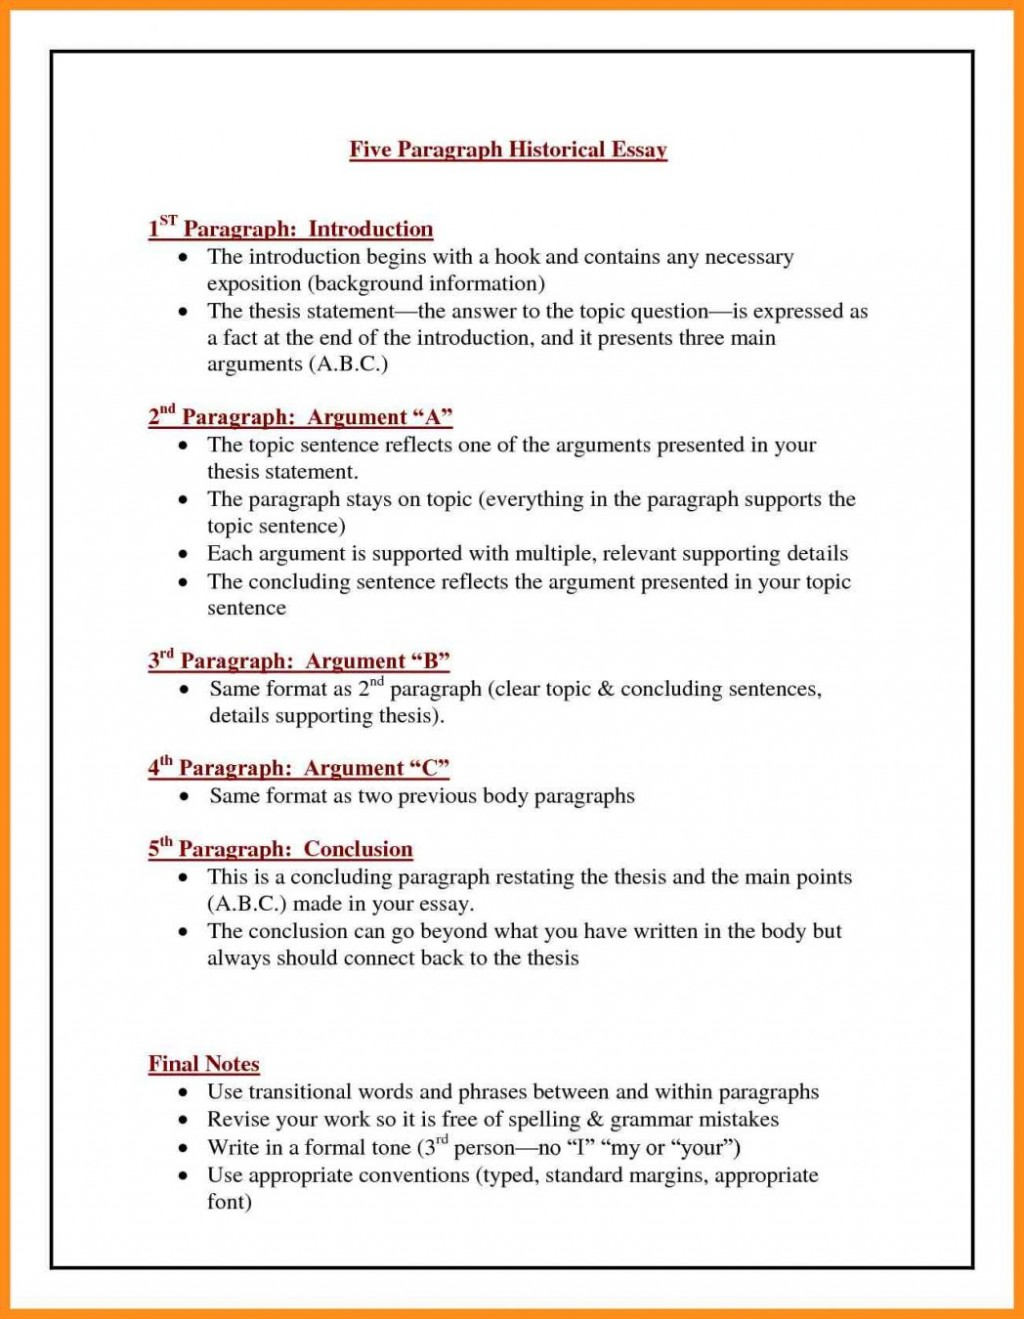 016 Essay Example How Many Sentences Are In Words Introduction Homework Writing Service To Start Off Sentence An Best Ideas Of Sample Fiveagraph Amazing Word Is A 5 Paragraph Short Large